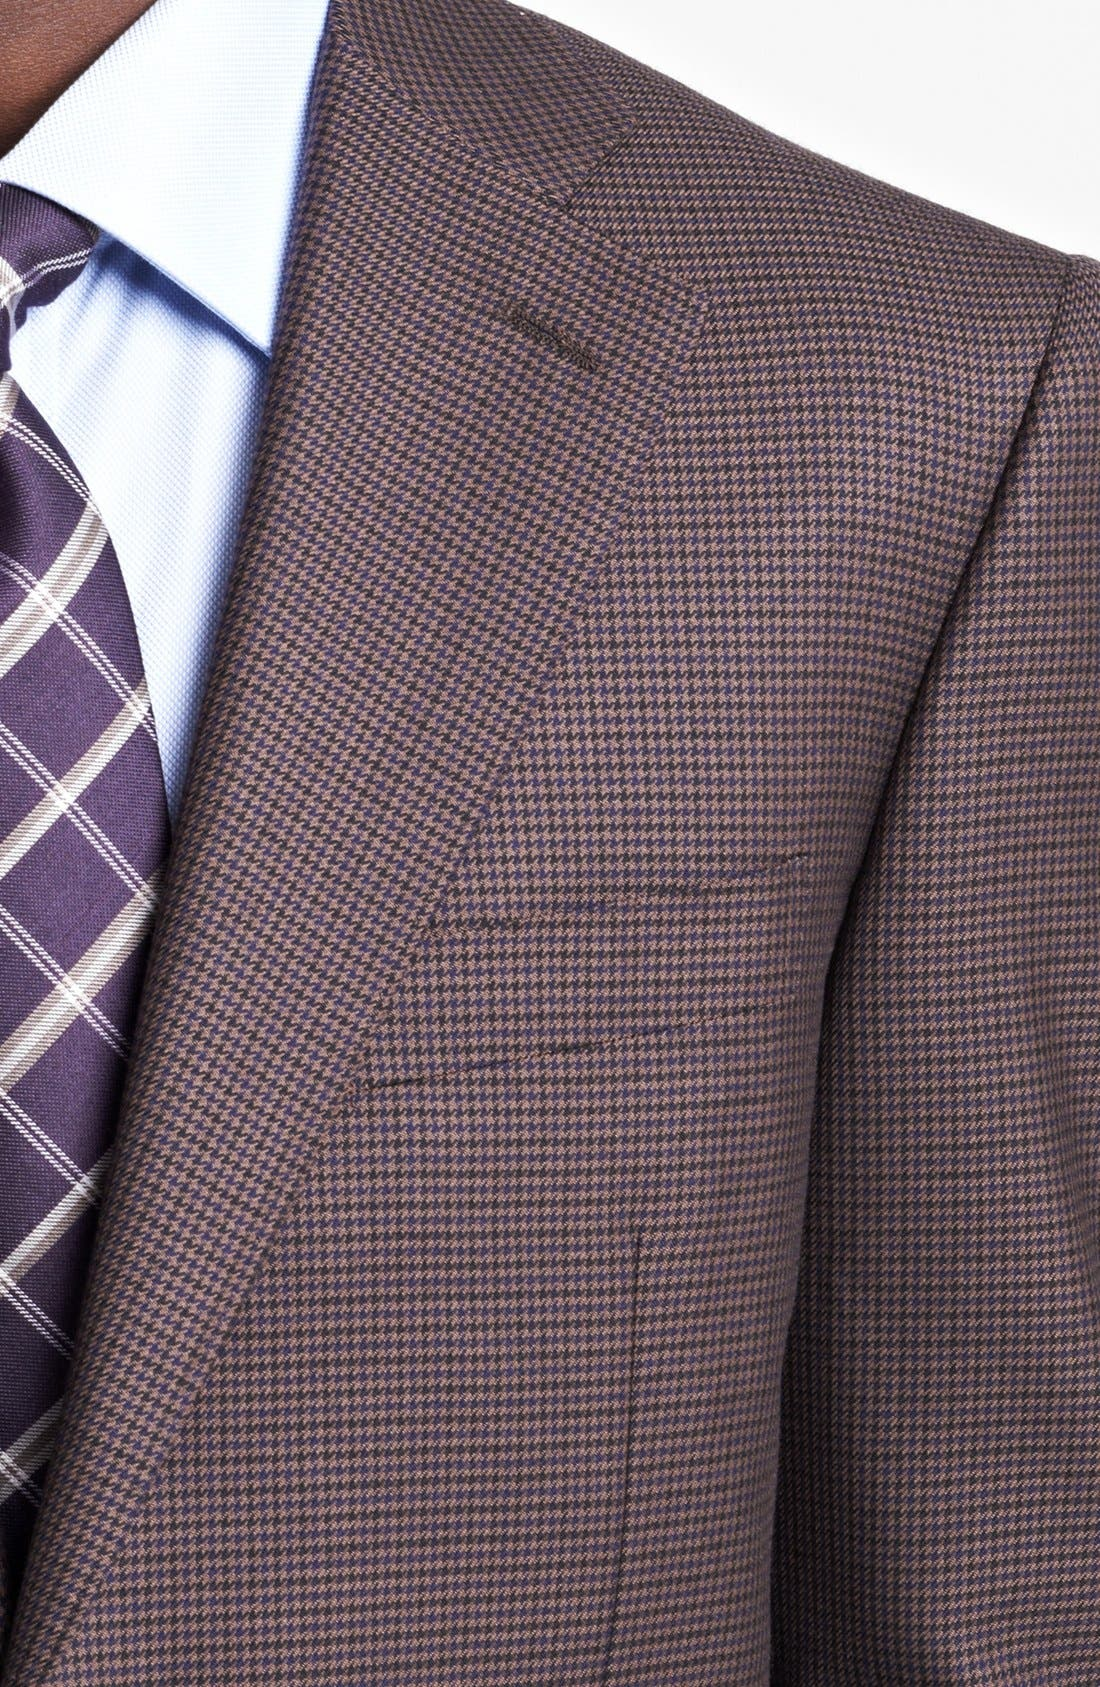 Alternate Image 2  - Canali Classic Fit Plaid Sportcoat